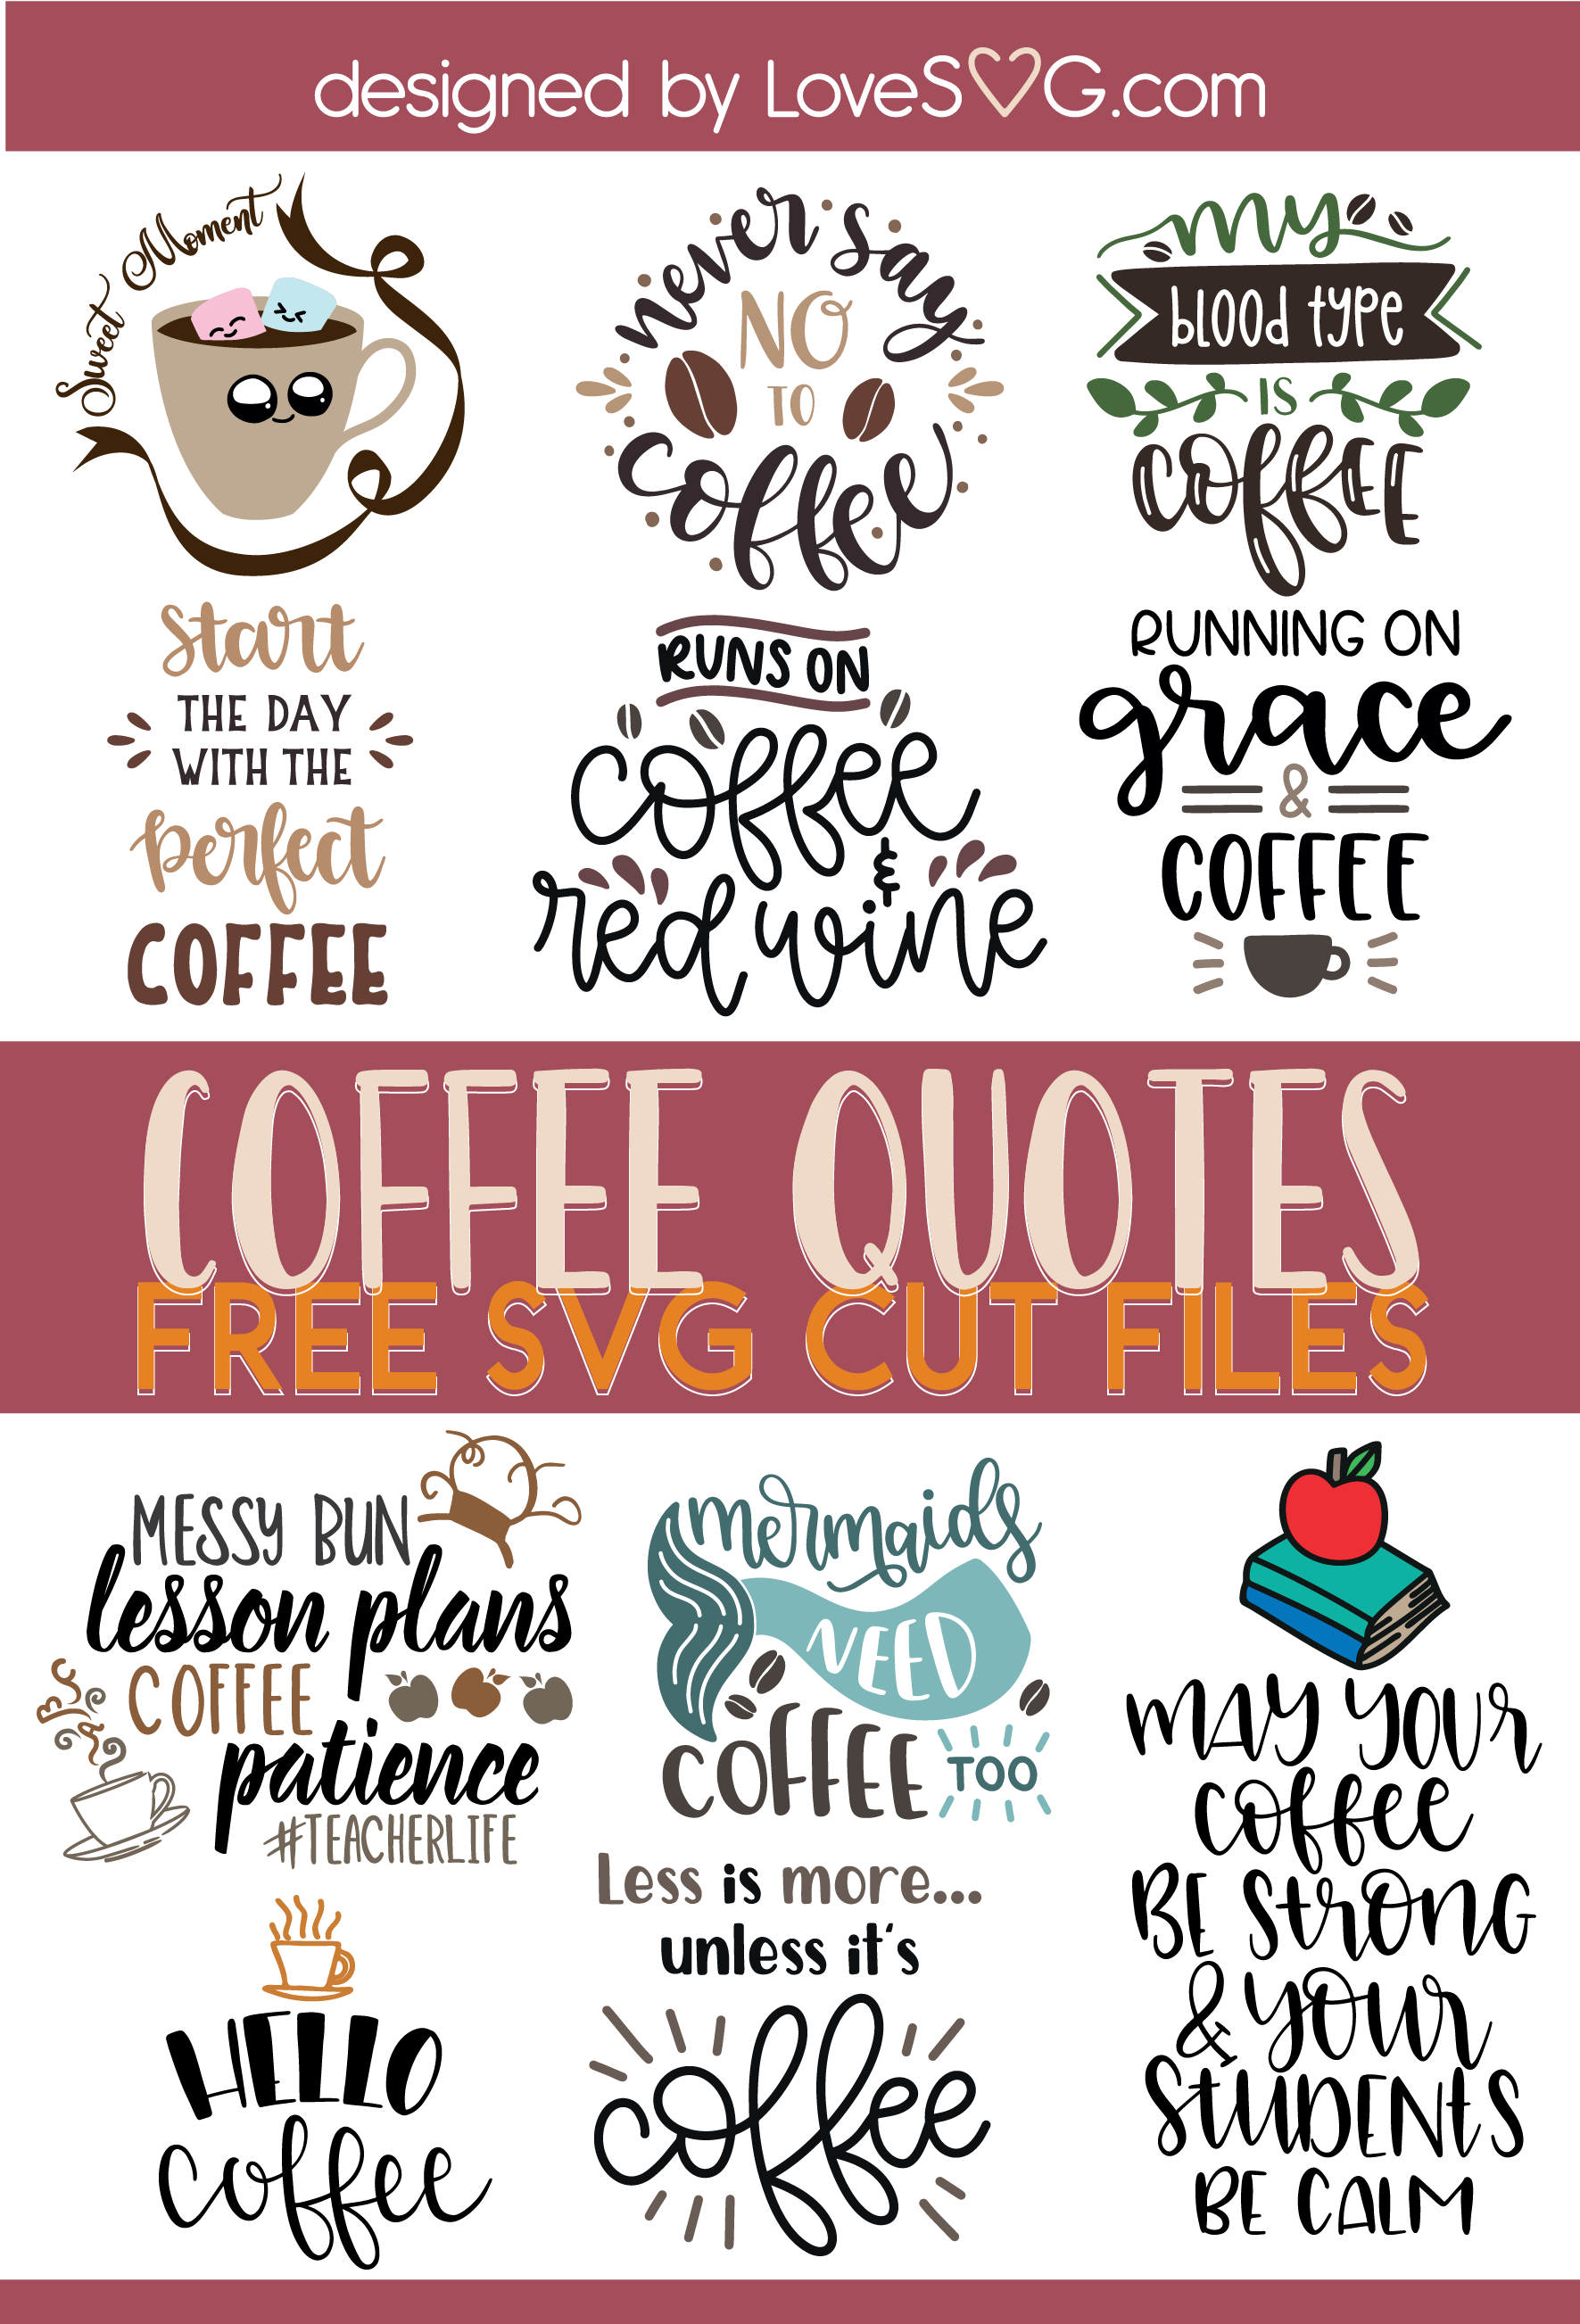 Pin on Free Funny Quotes SVG Cut Files